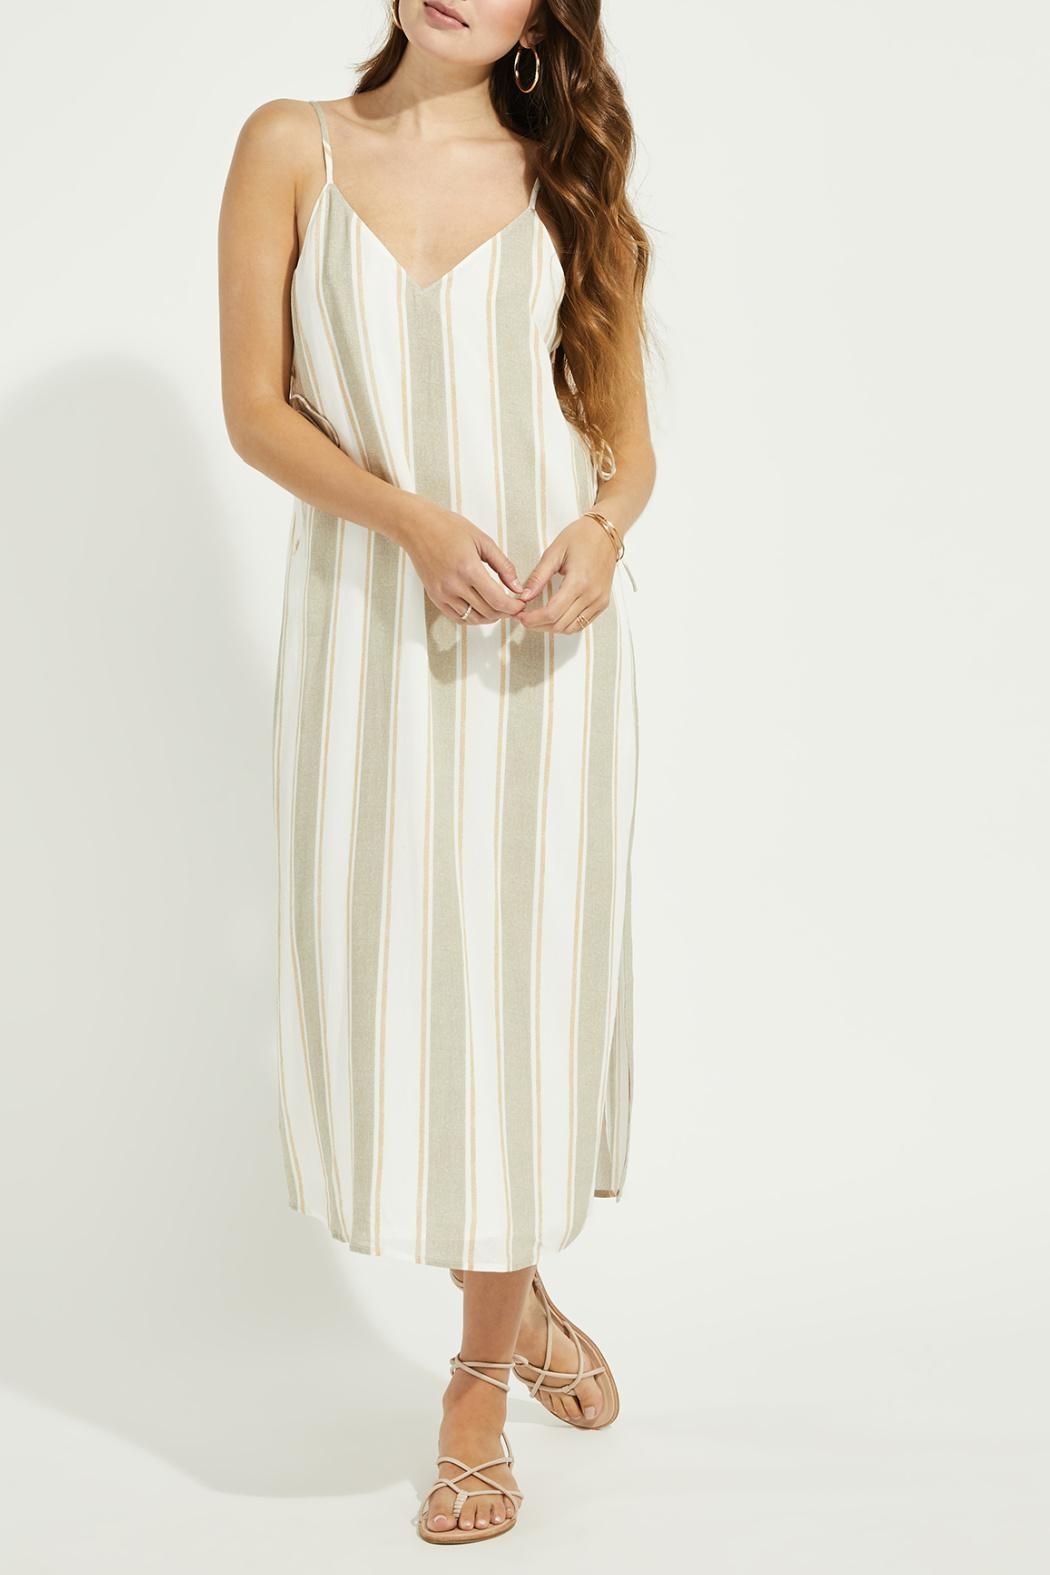 Gentle Fawn Side Lace Up Dress - Front Full Image